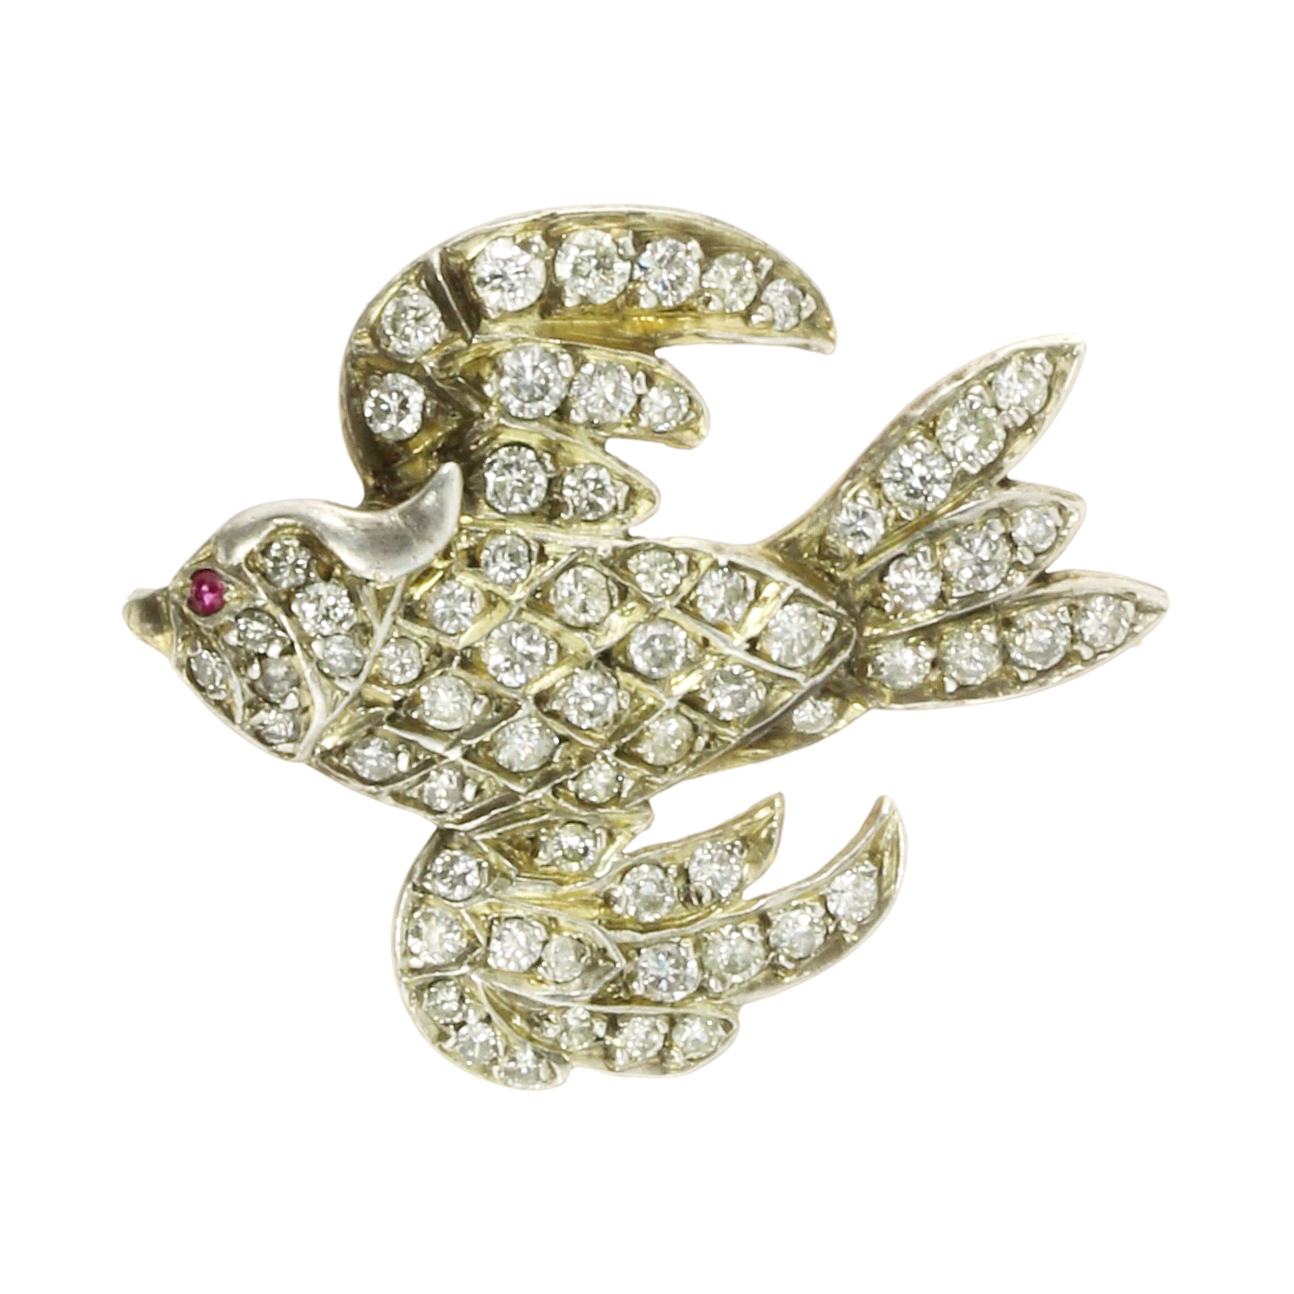 Los 47 - A JEWELLED RUBY AND DIAMOND BIRD BROOCH modeled as a bird in flight, jewelled all over with round